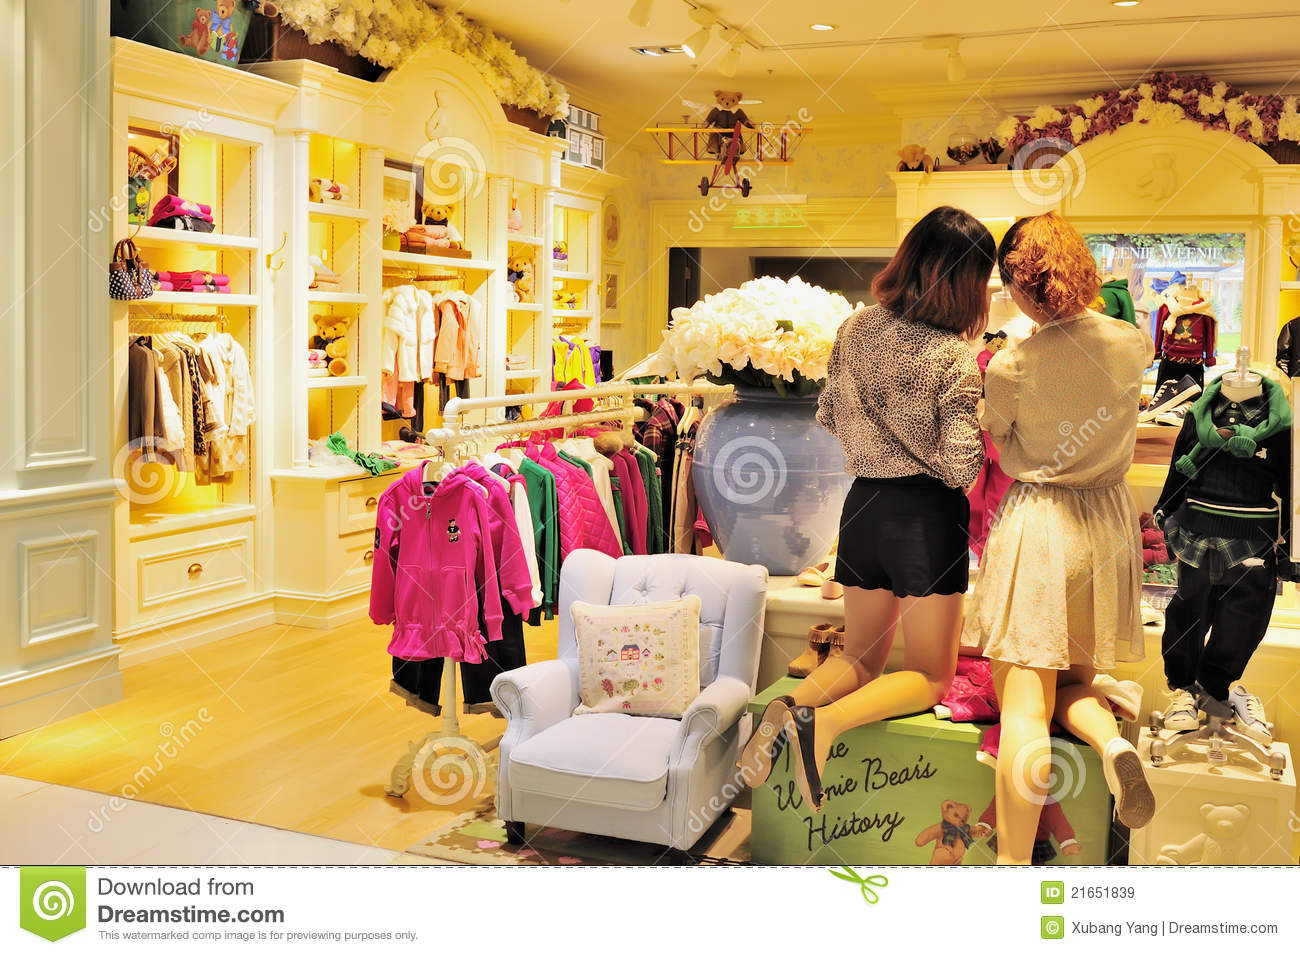 Childrens clothing stores